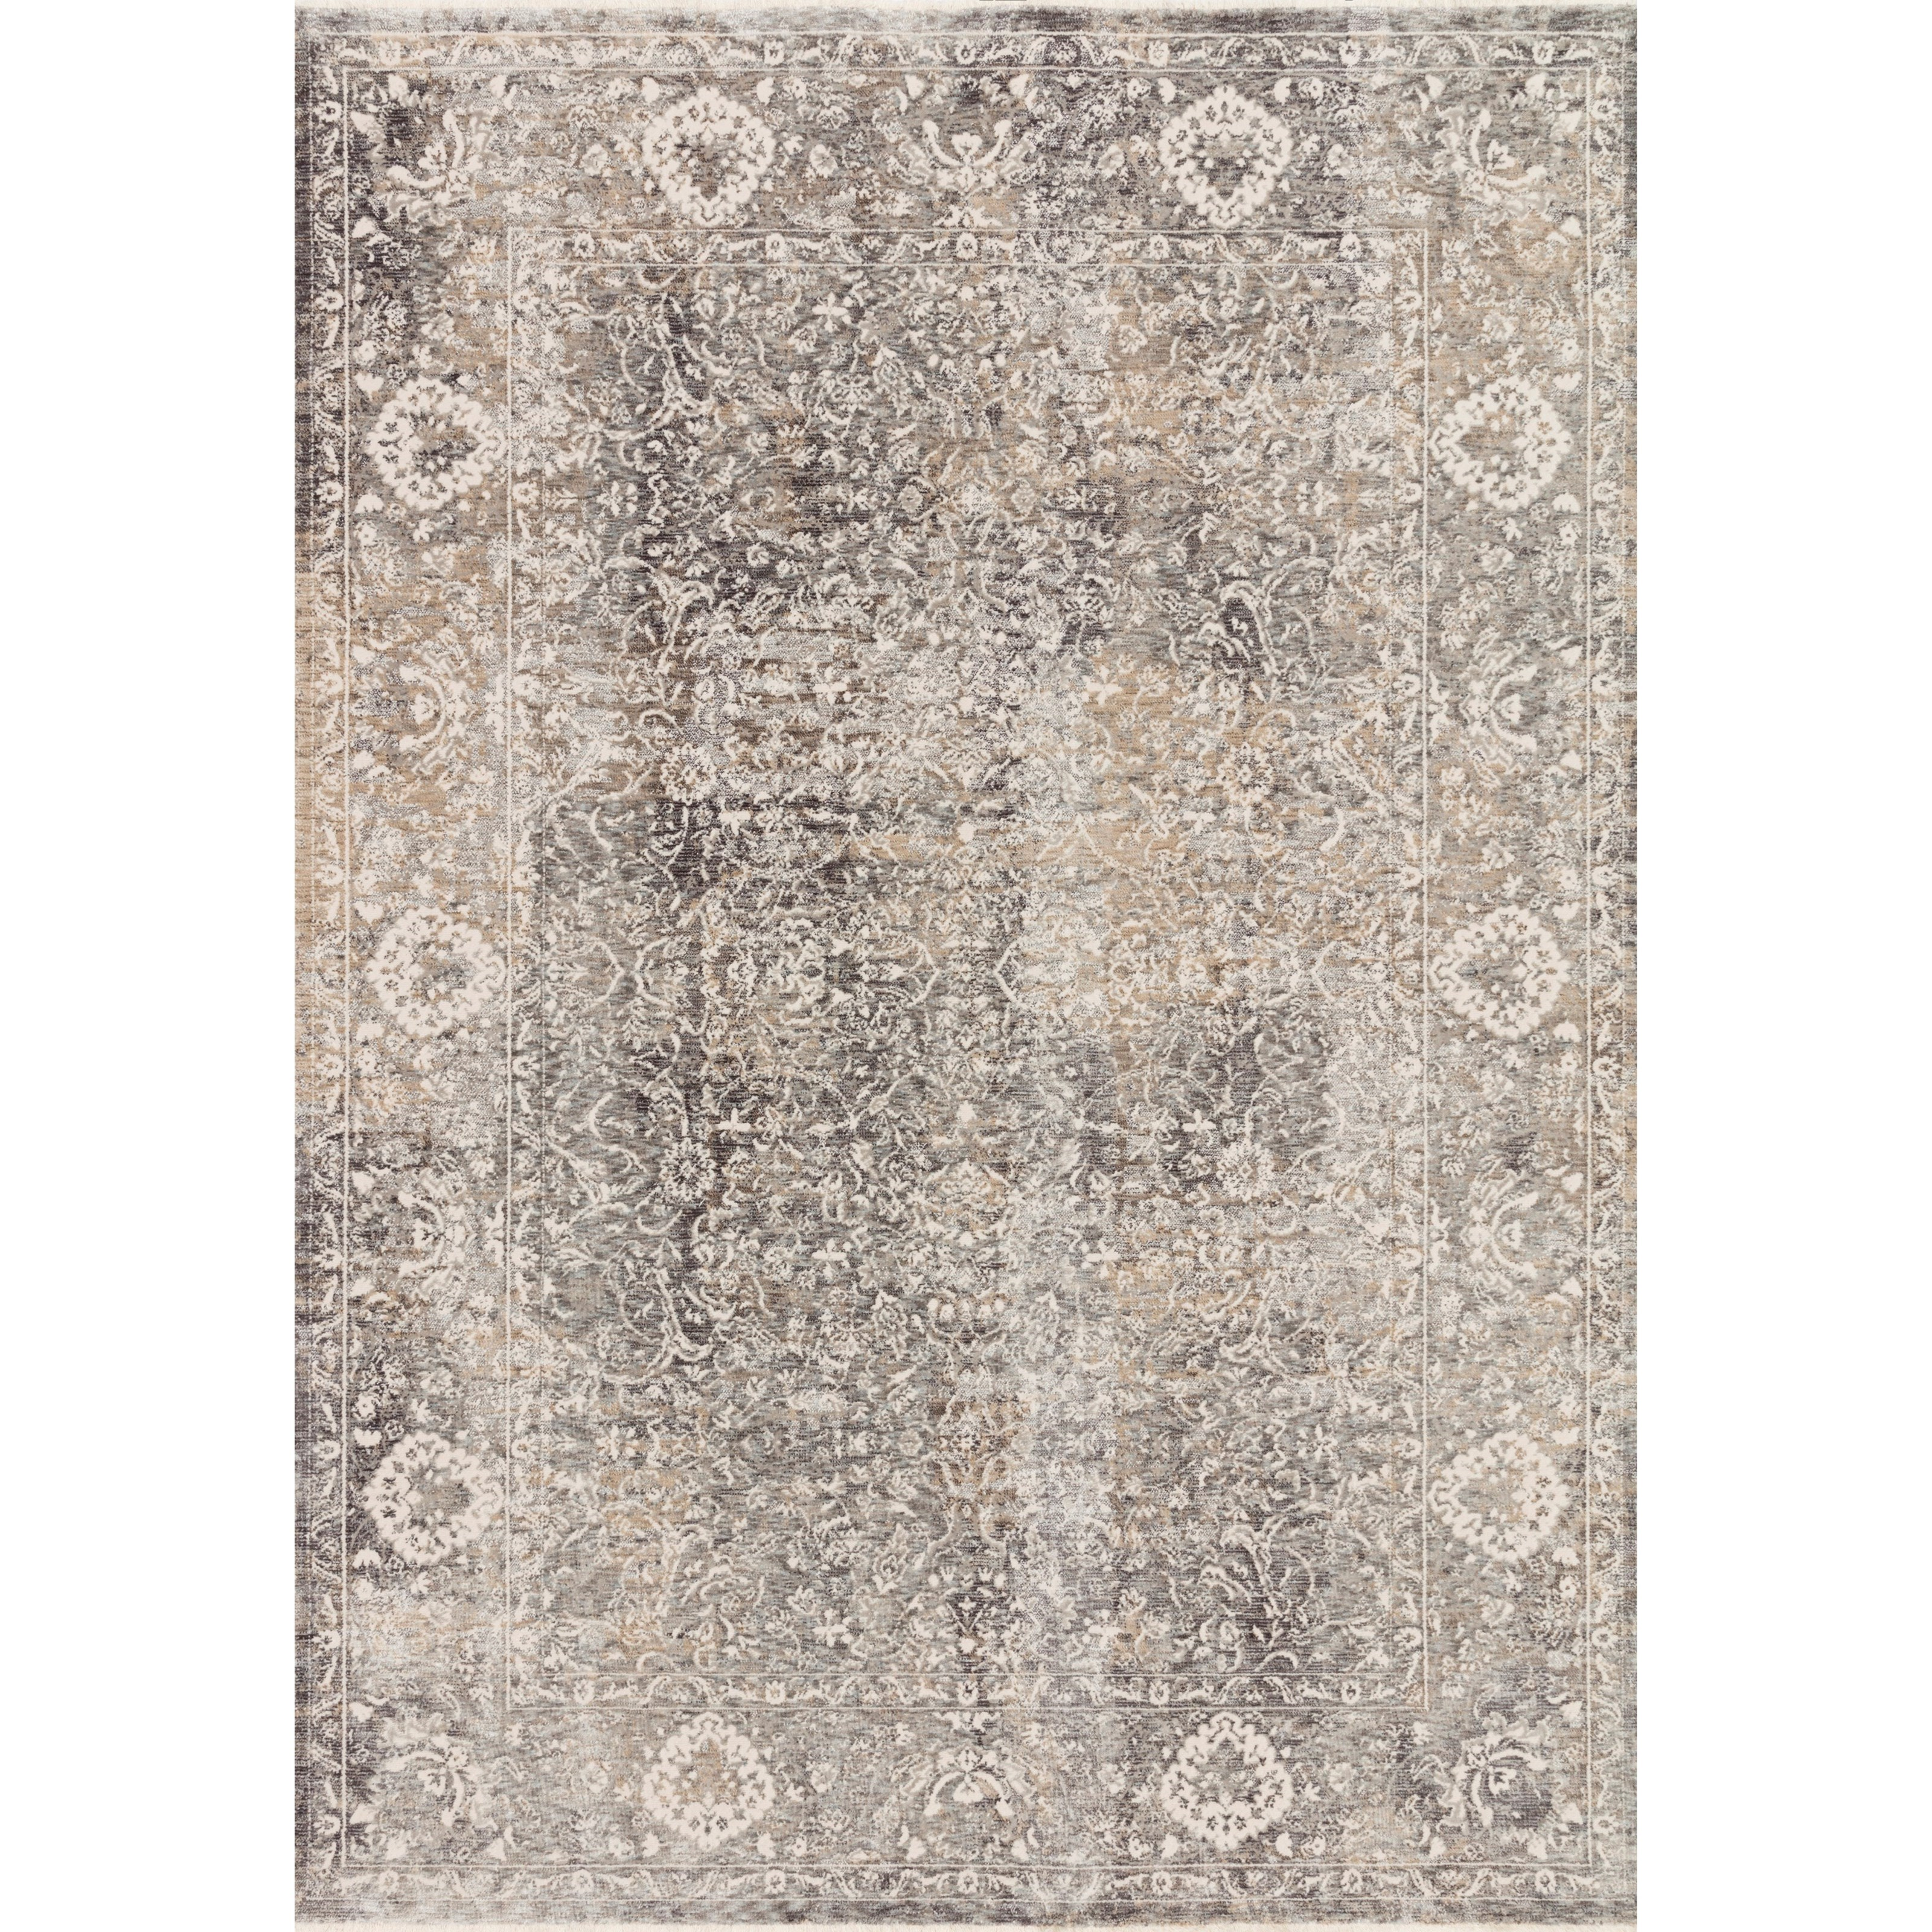 """Homage 9'6"""" x 12'5"""" Stone / Ivory Rug by Loloi Rugs at Virginia Furniture Market"""